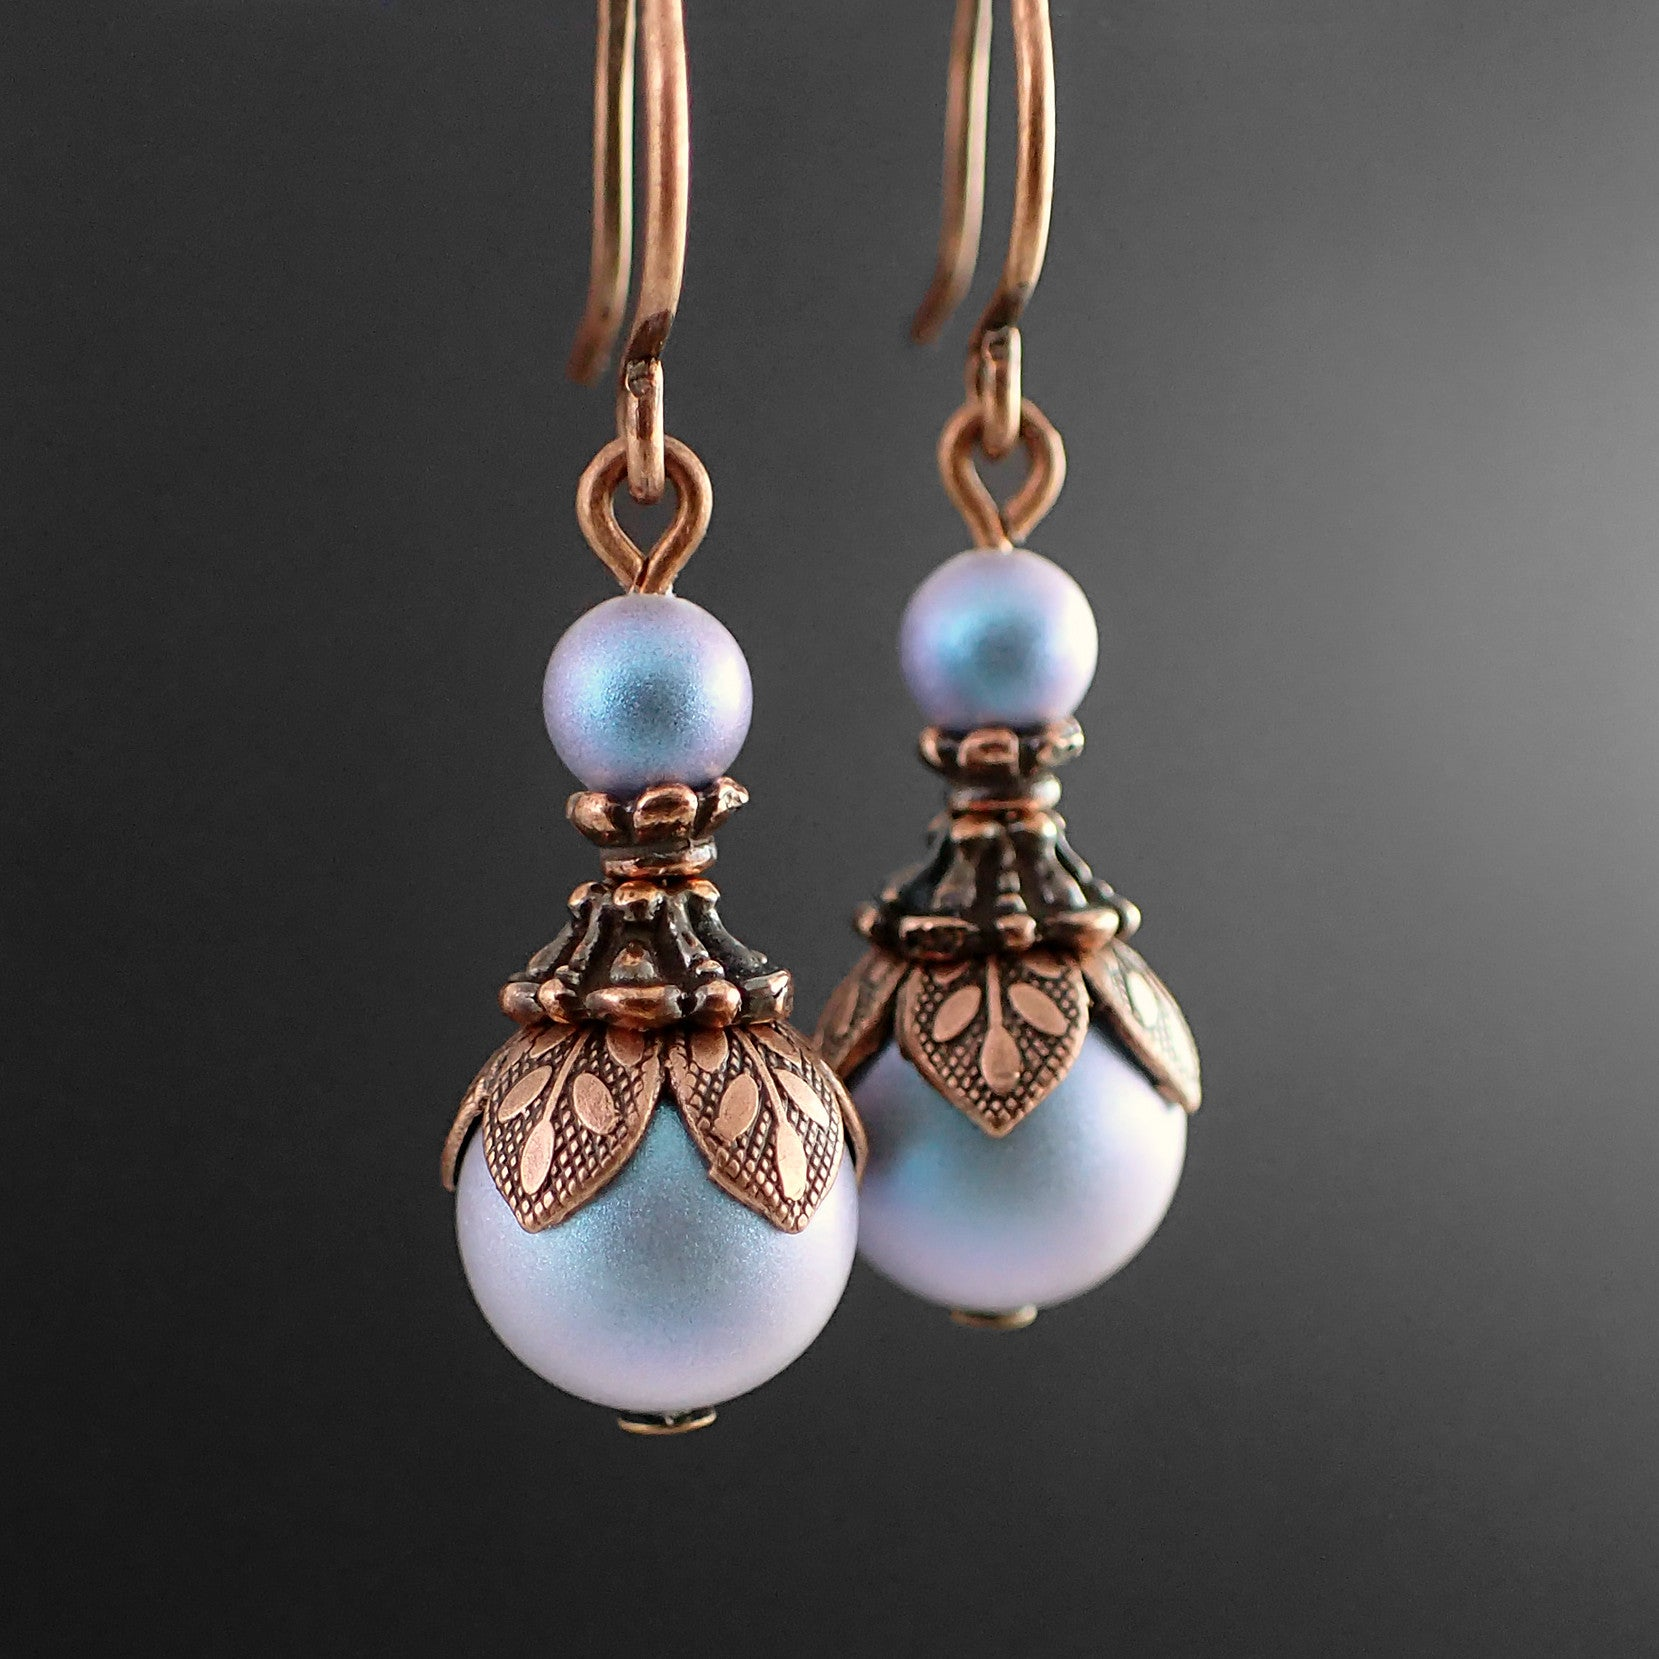 Ethereal Iridescent Blue Swarovski Pearl Earrings - view 2